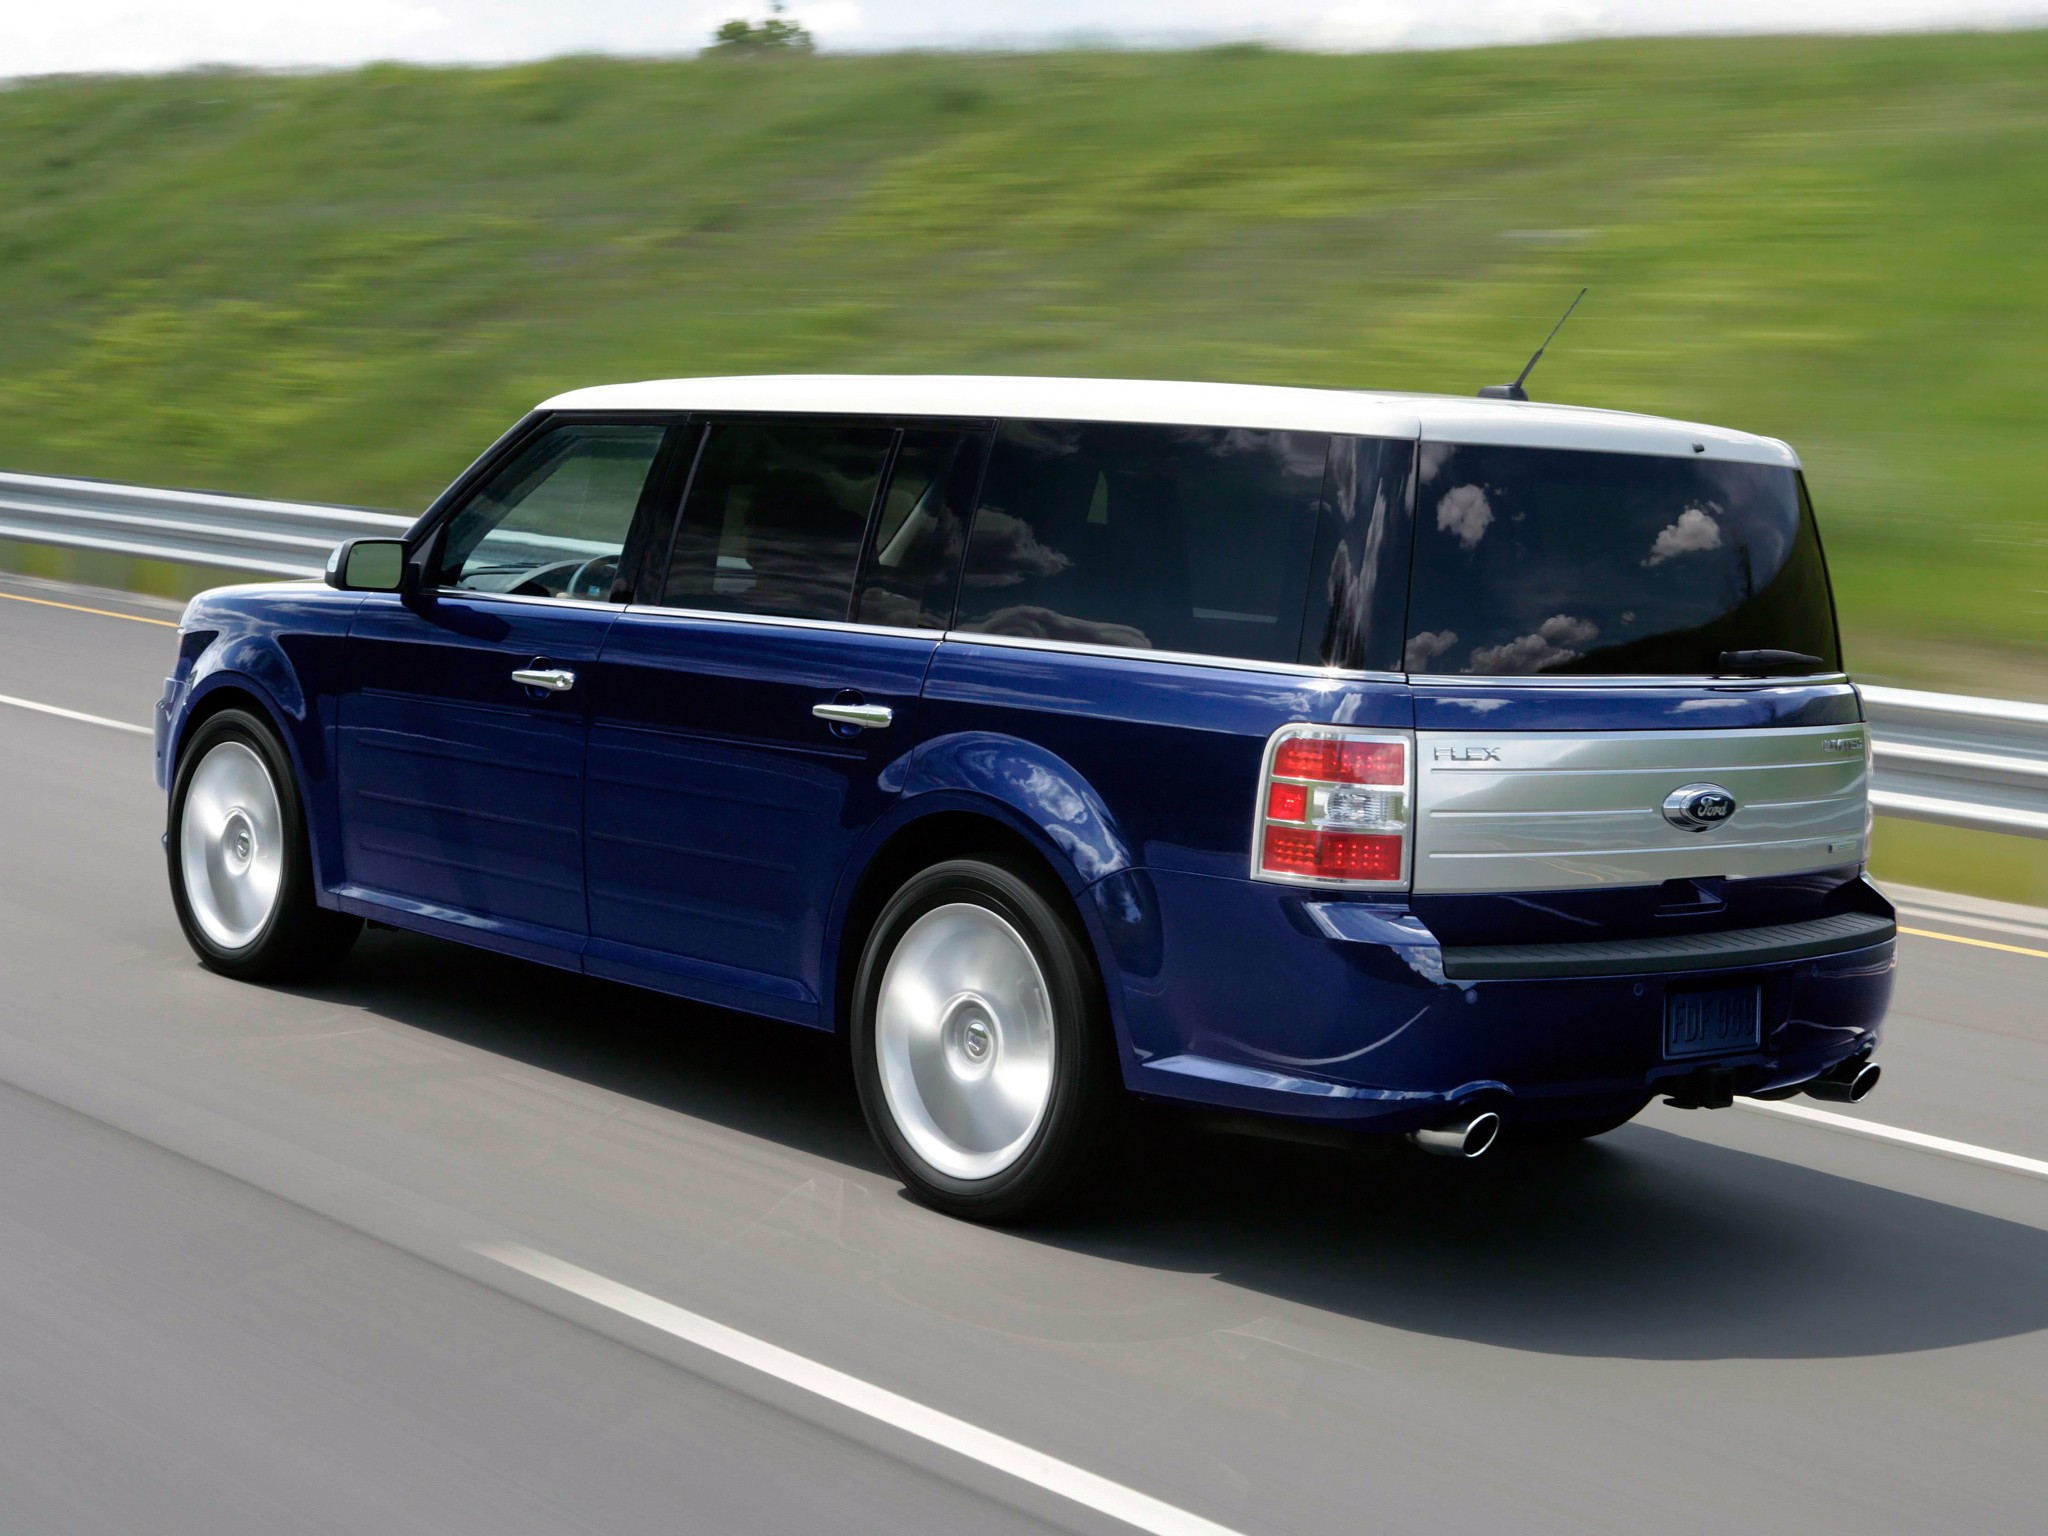 aston martin tuning with Ford Flex 2009 on Volkswagen Sharan 1996 also Ford Flex 2009 furthermore Images likewise Peugeot 508 Sw 81496 additionally Hatchback5d.